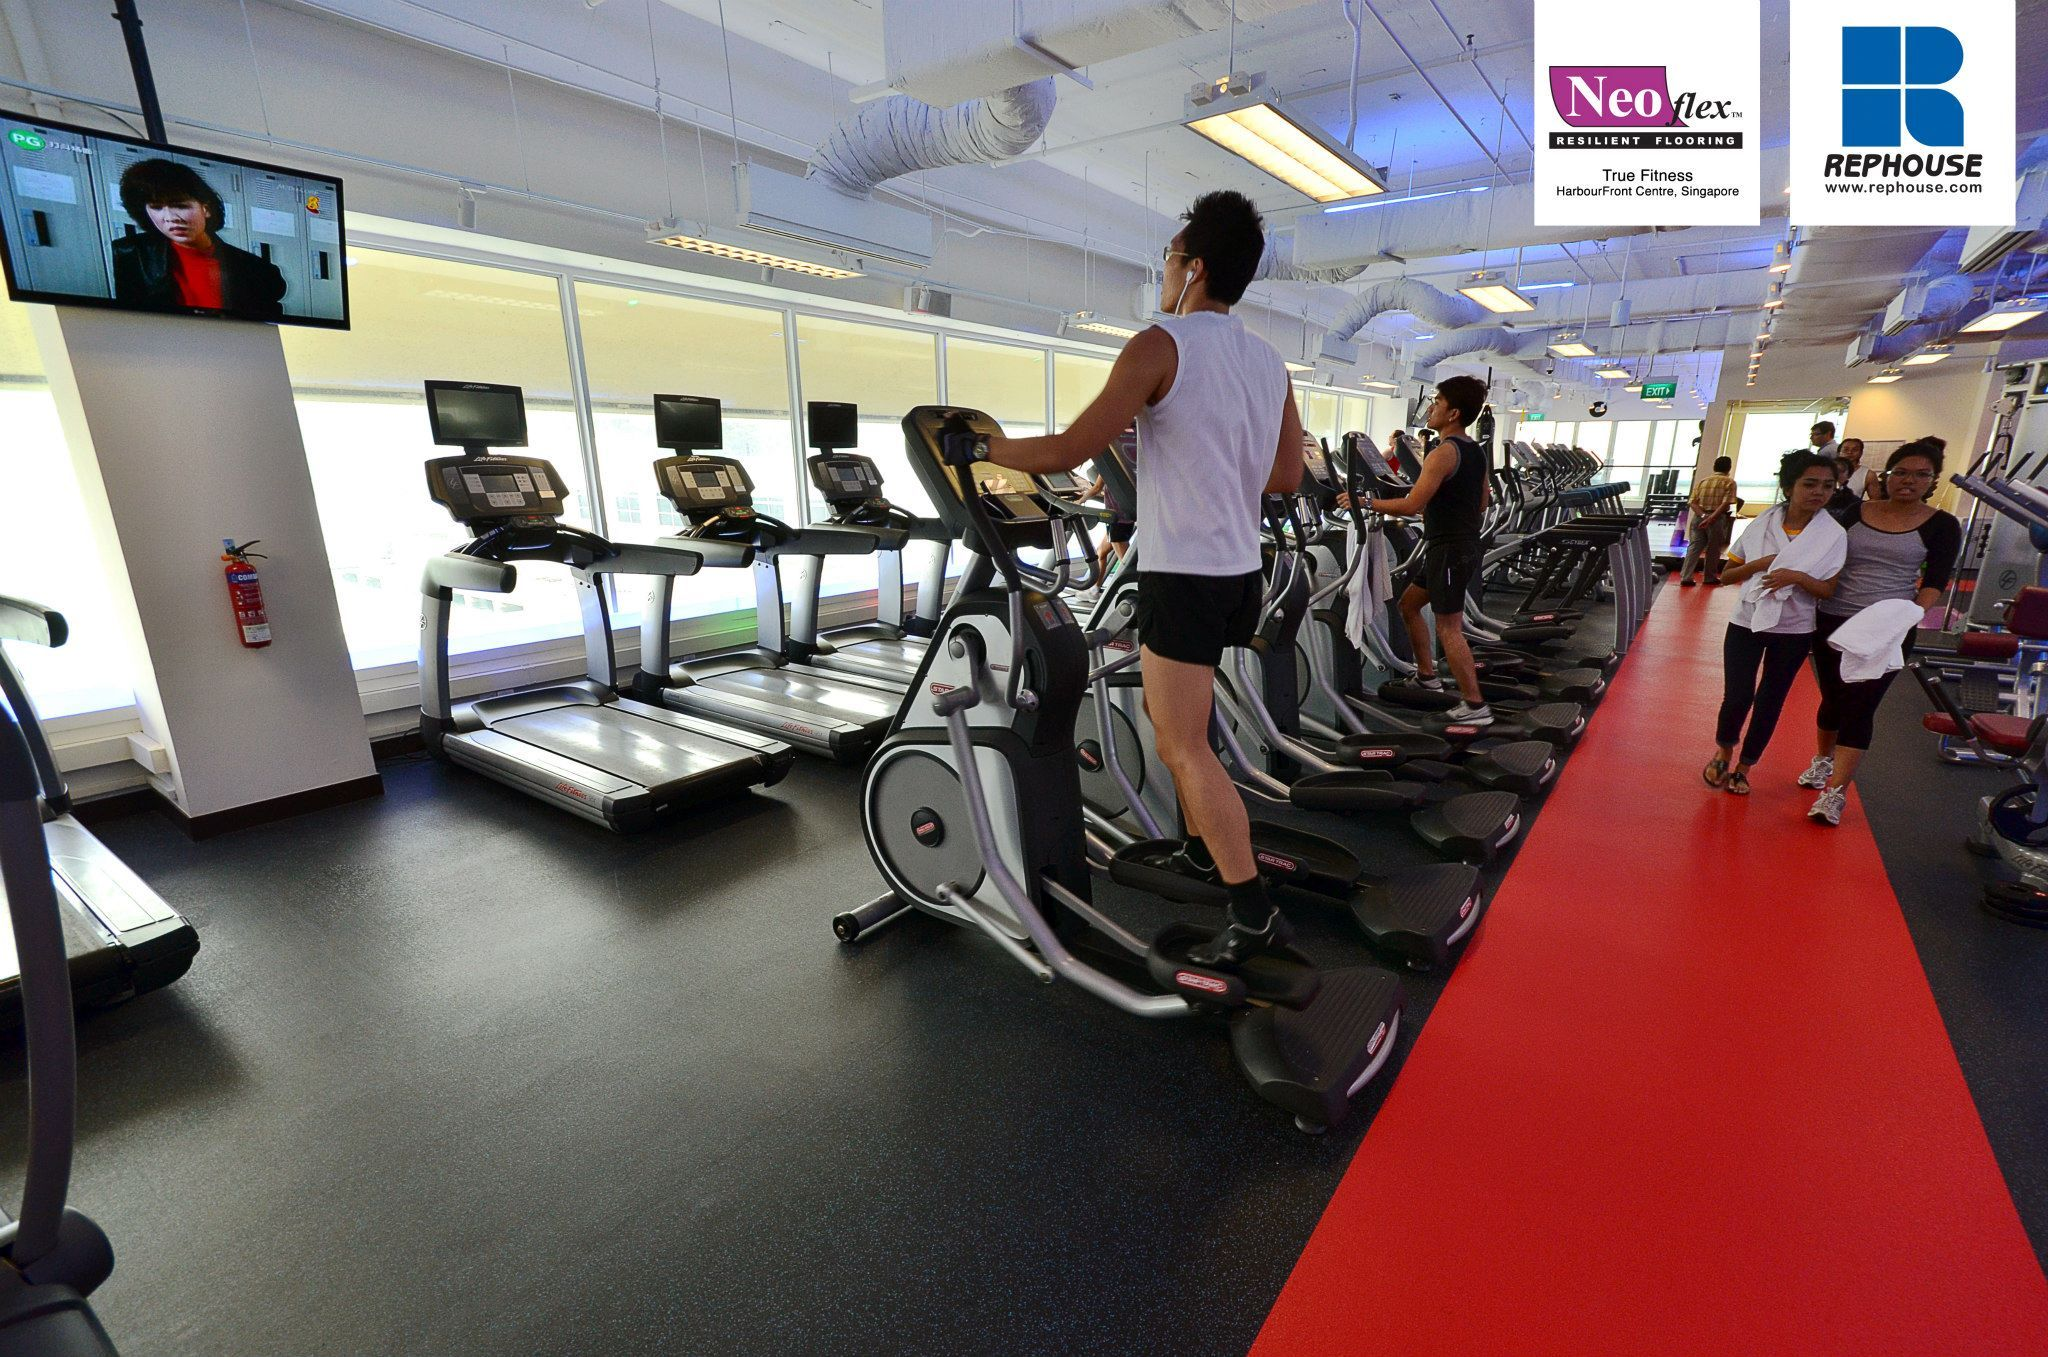 Neoflex 500 Series Rubber Fitness Flooring True Fitness